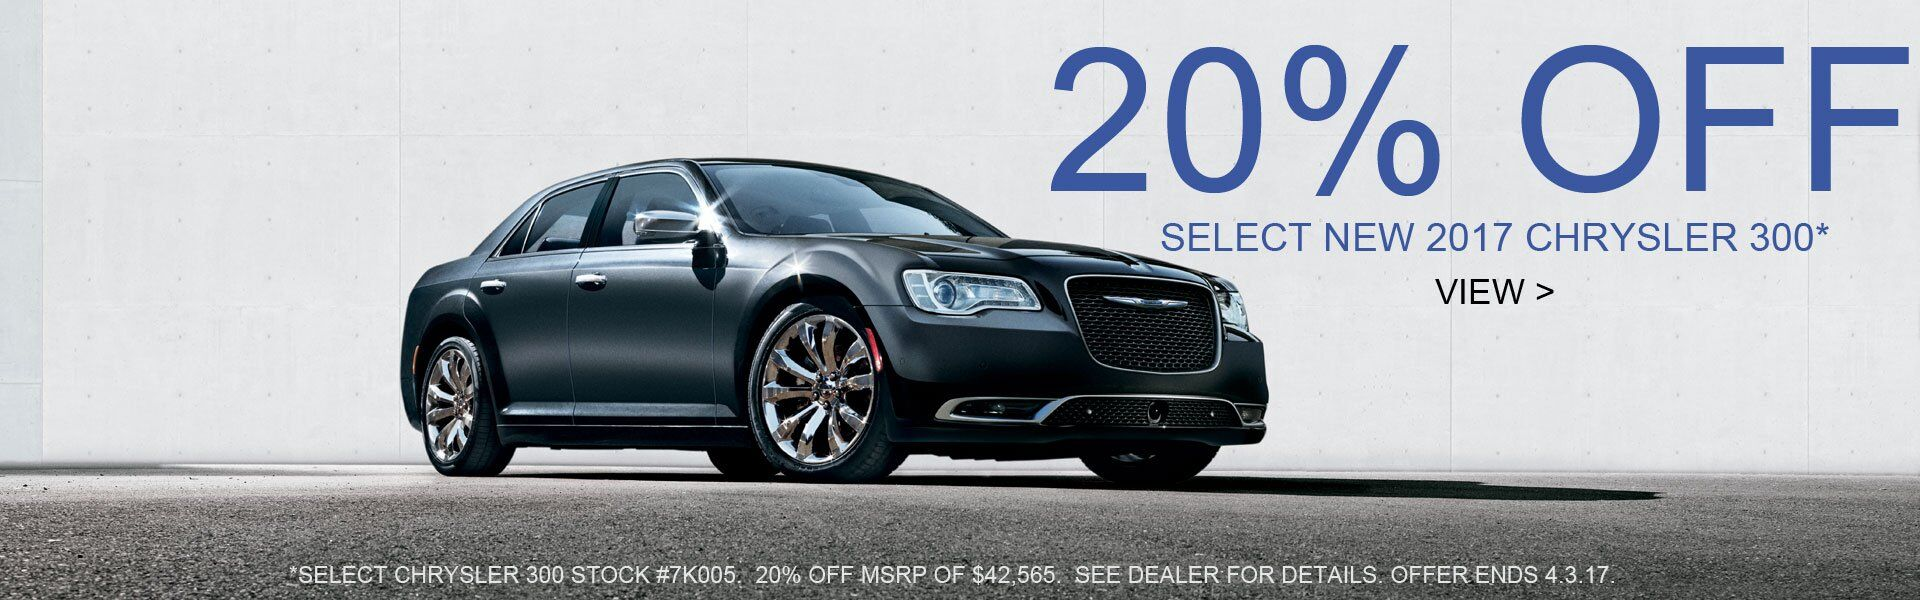 20% OFF Chrysler 300 Pelletier Motors